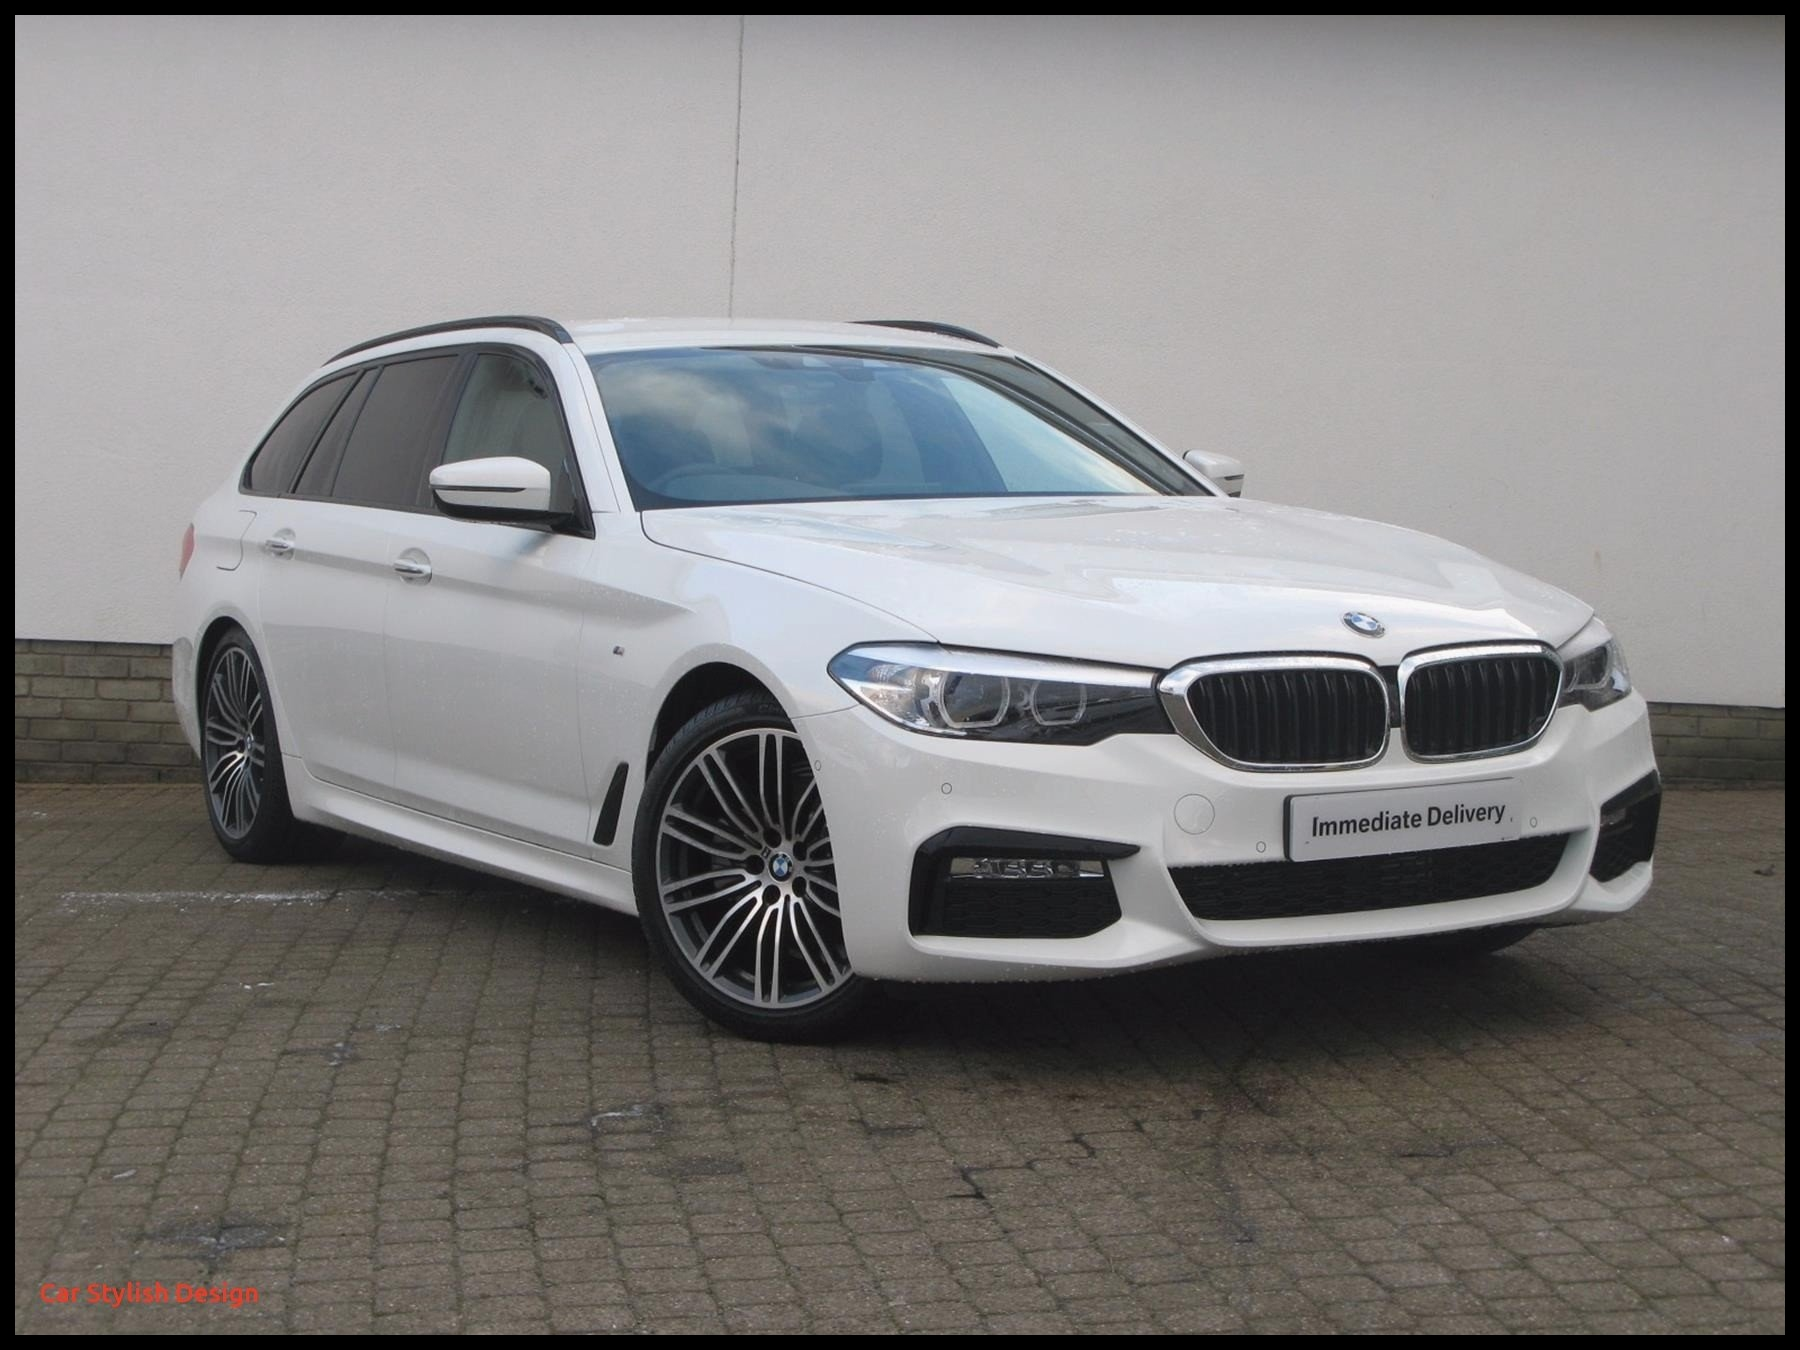 Bmw 550i Beautiful High Tech Used 2017 Bmw 5 Series G31 520d M Sport touring B47